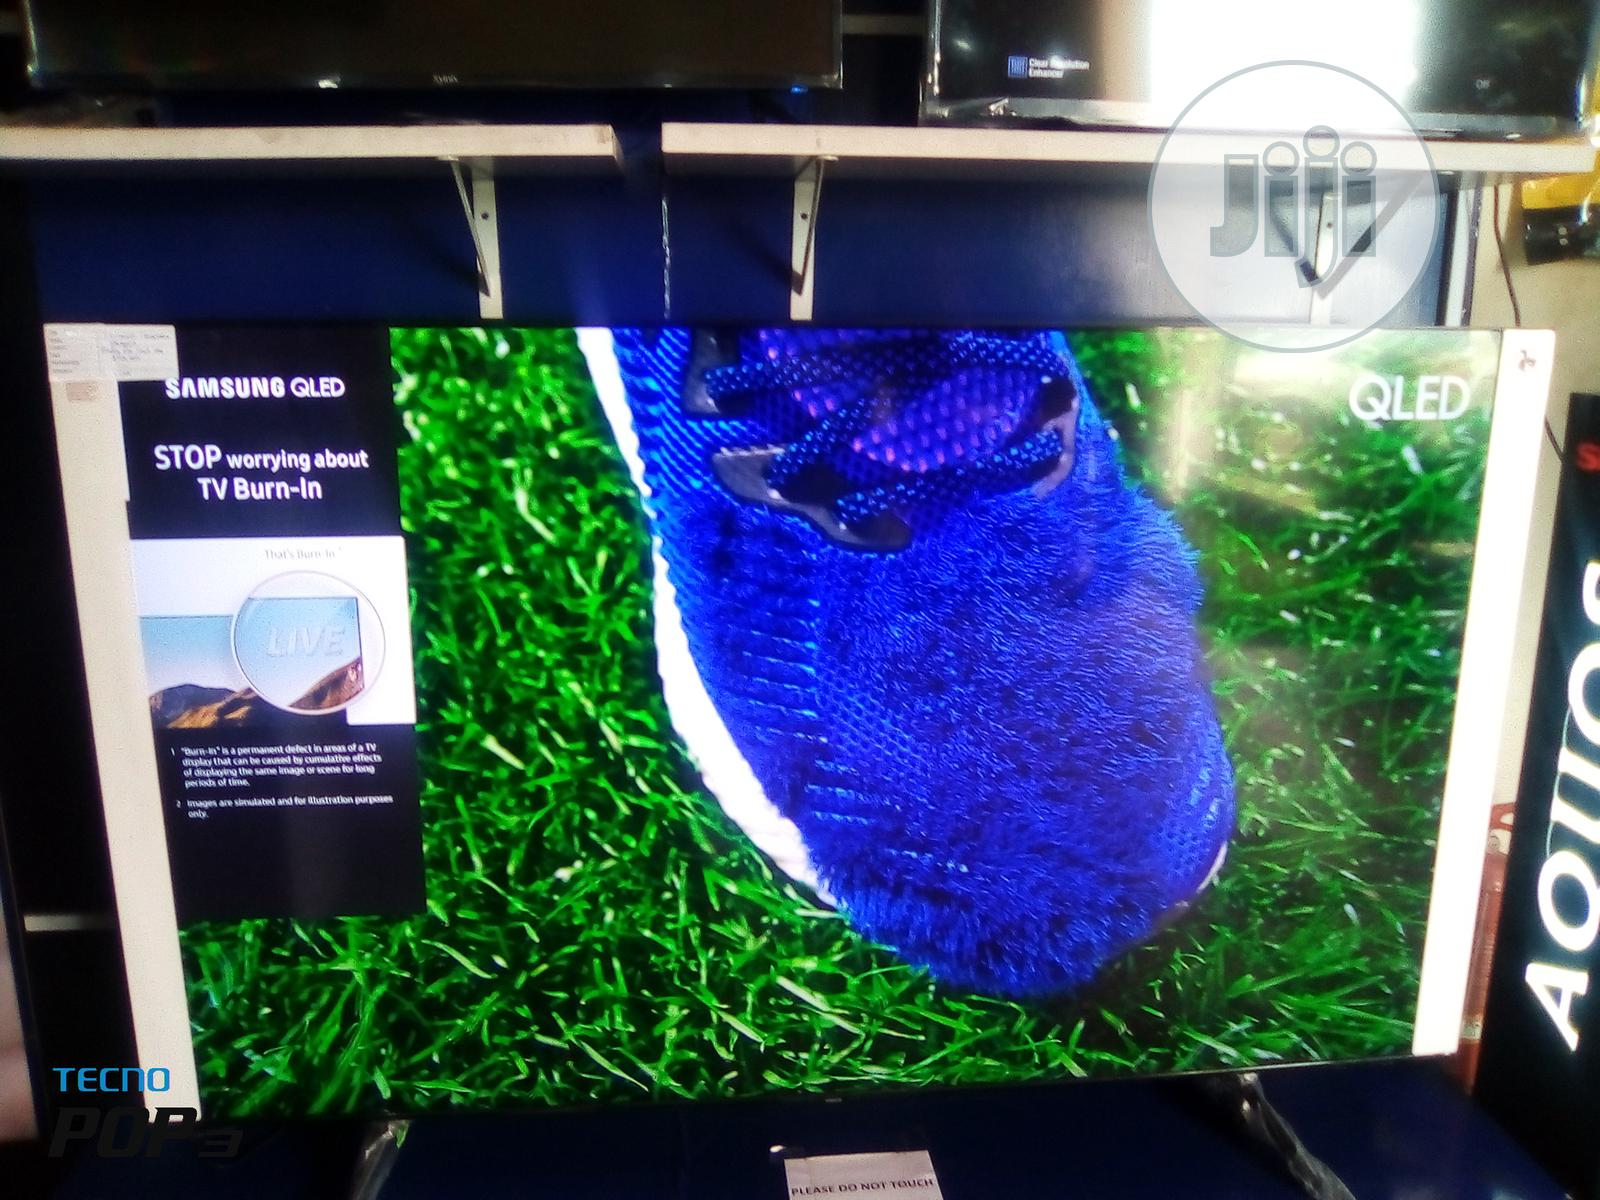 Original Samsung Tv Sets 43 Inches | TV & DVD Equipment for sale in Ikwerre, Rivers State, Nigeria